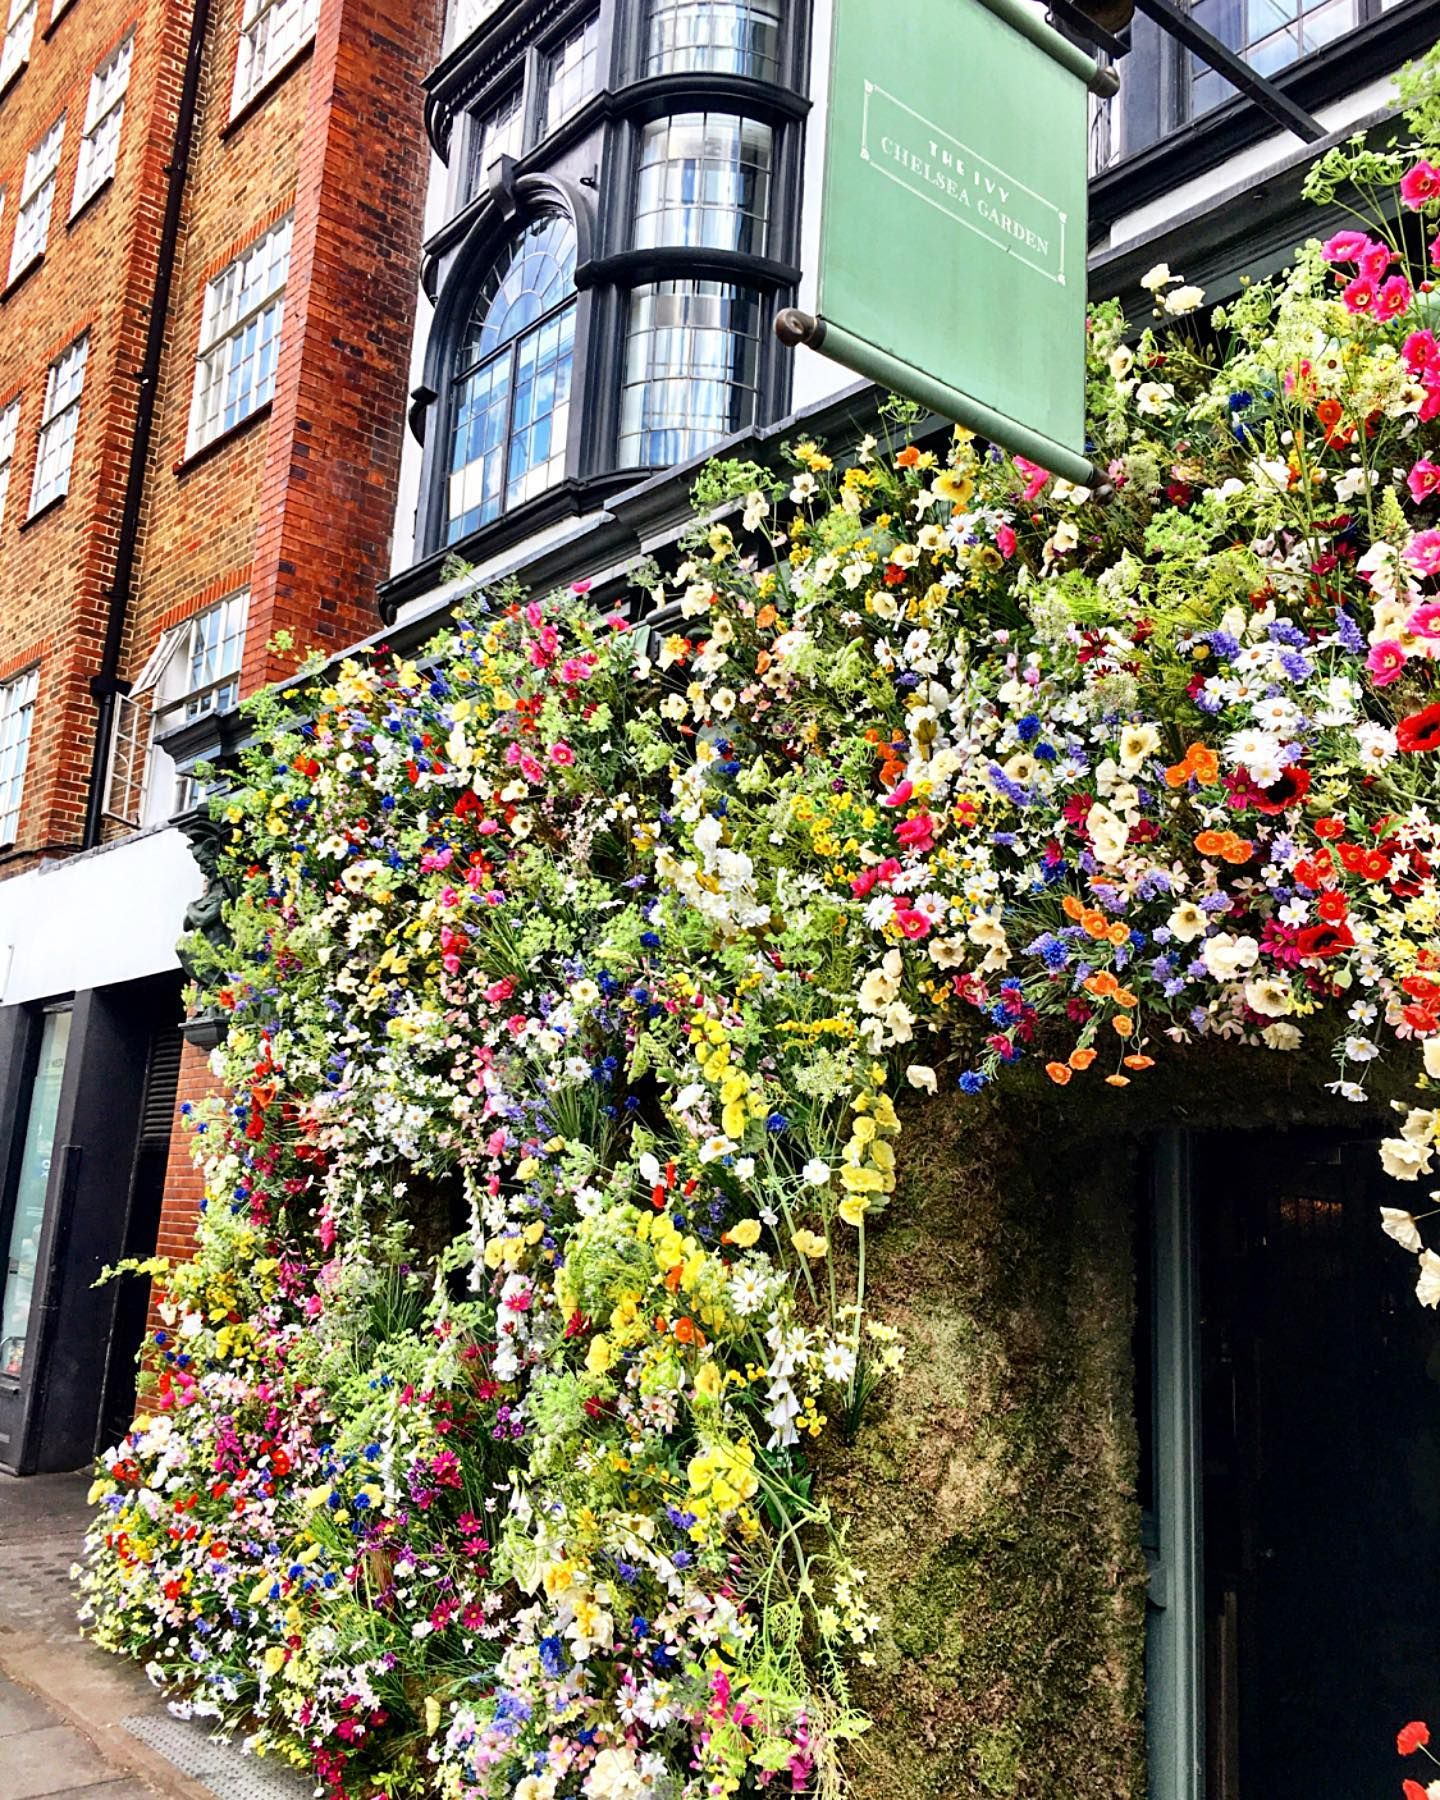 The Ivy Chelsea Garden getting into the spirit of Chelsea